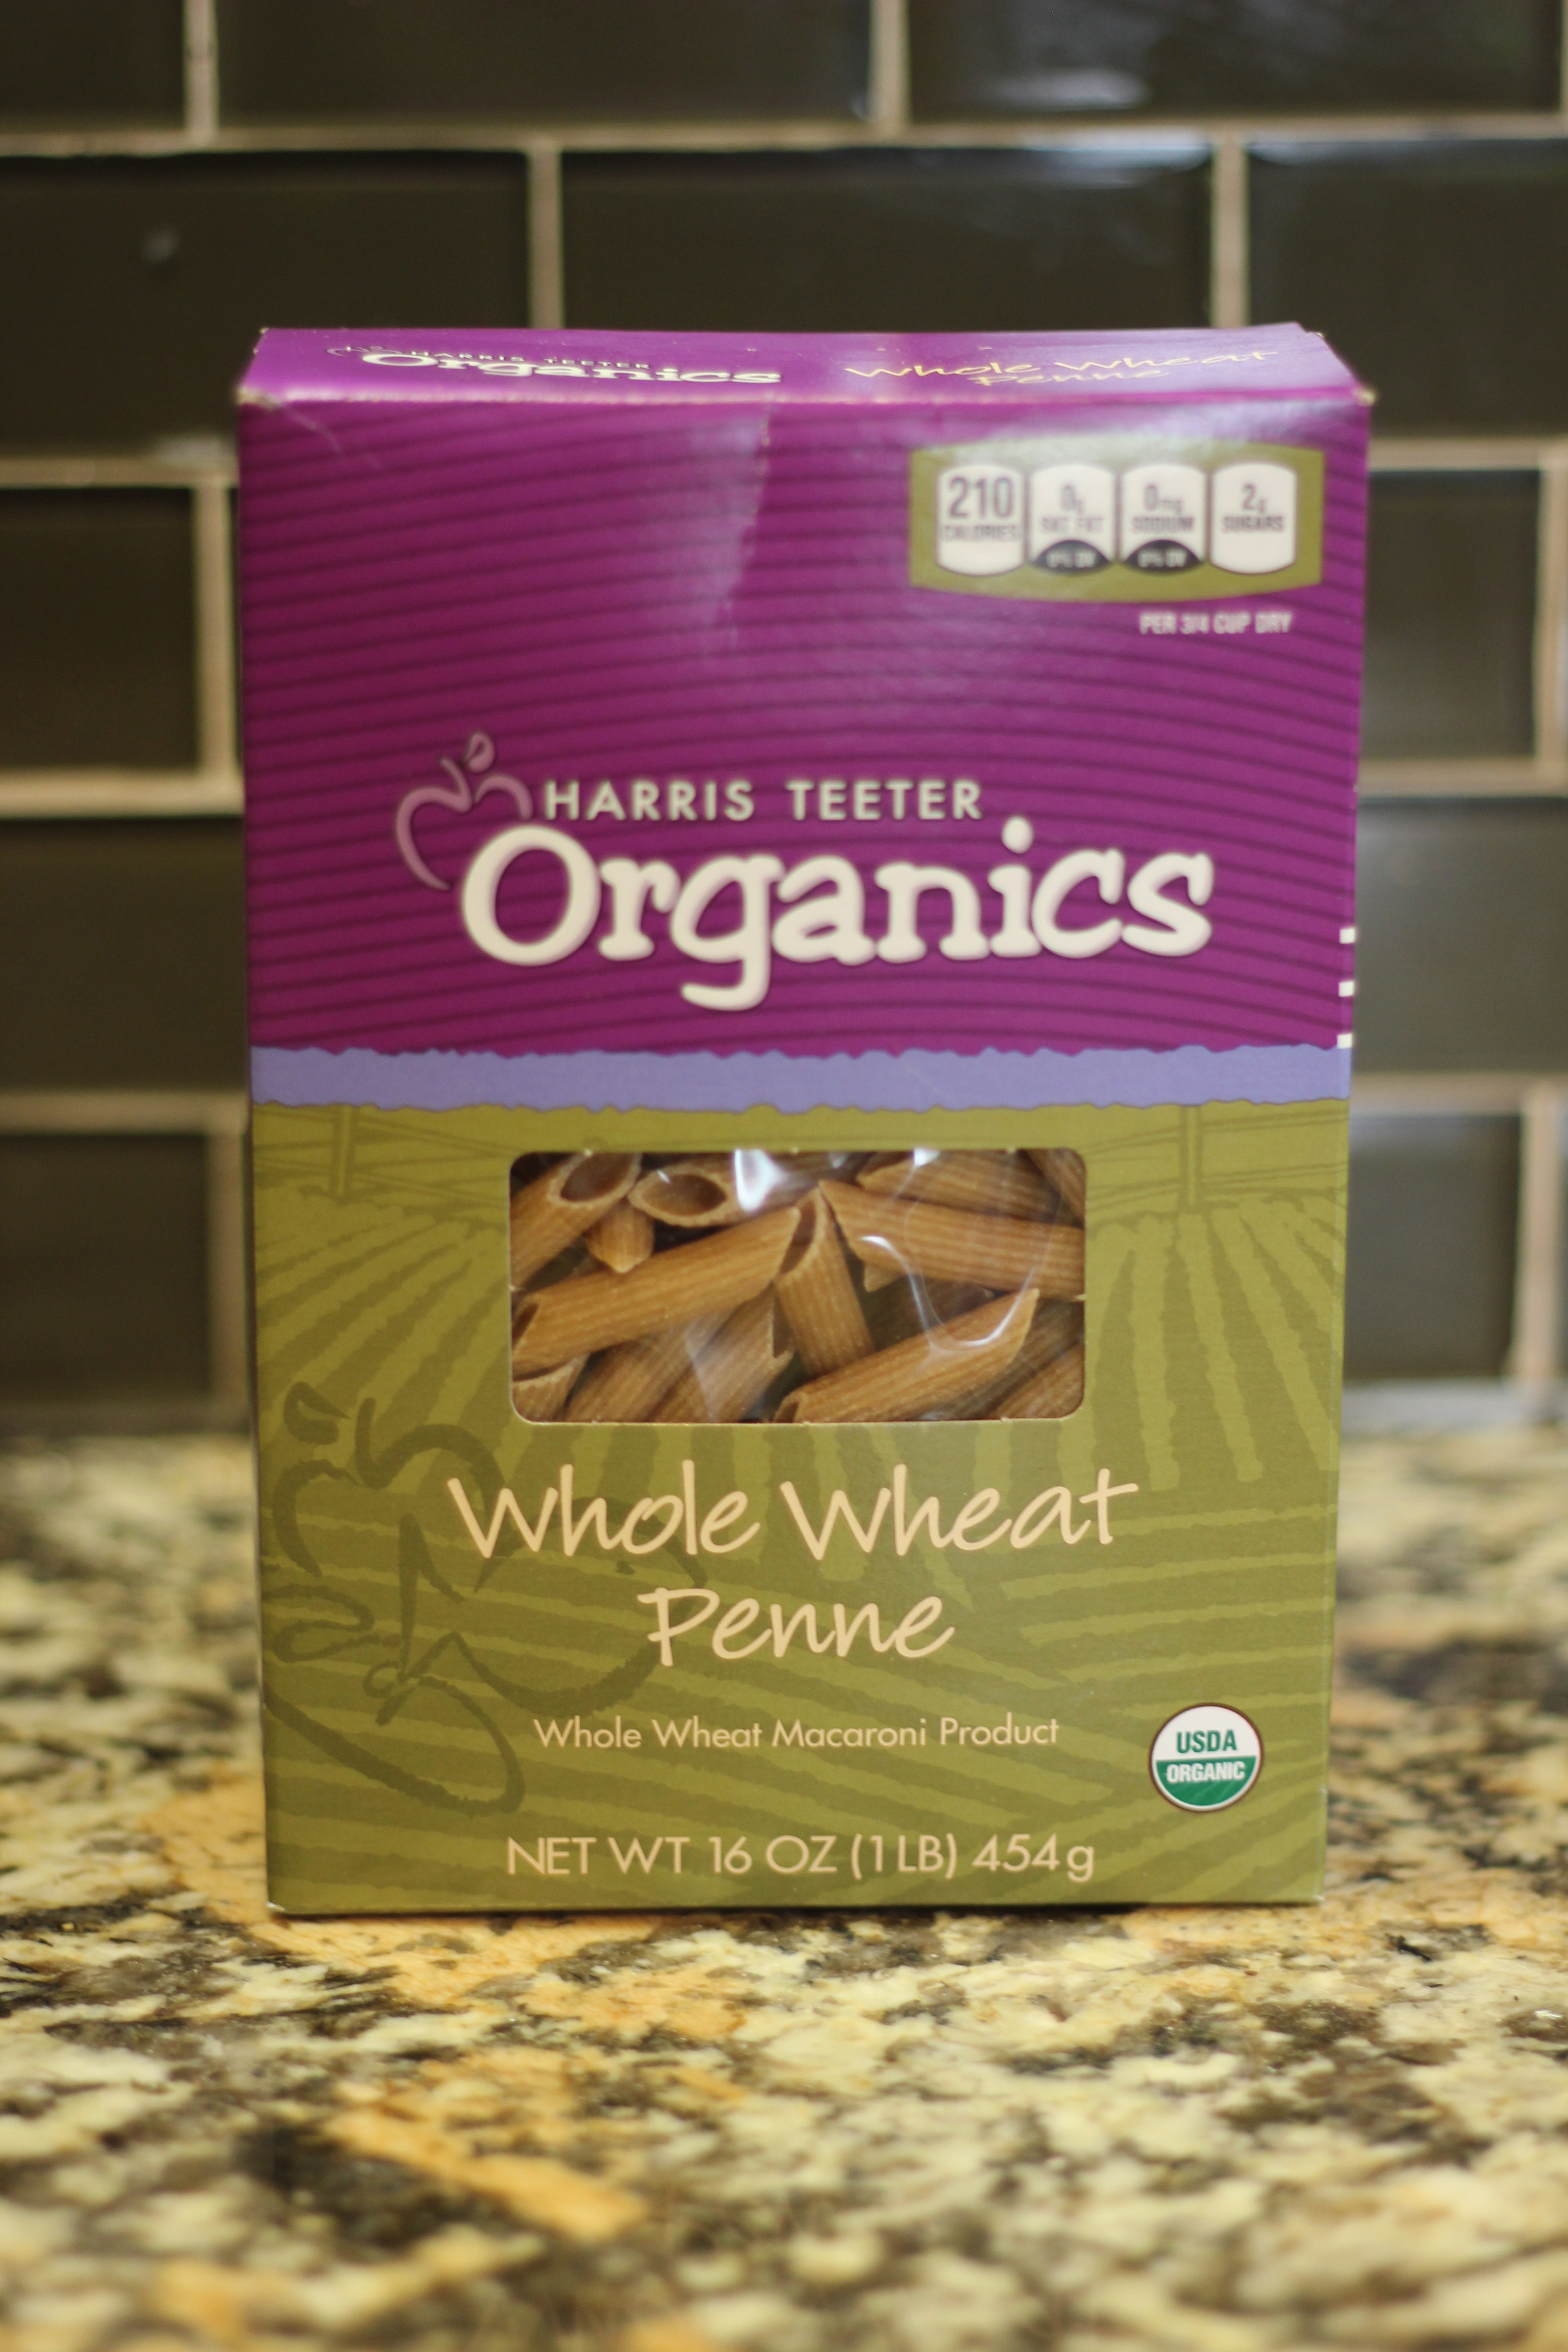 BTW, while this pasta is from my grocery store down the way, I have found incredibly good prices on whole wheat pasta from Whole Foods.